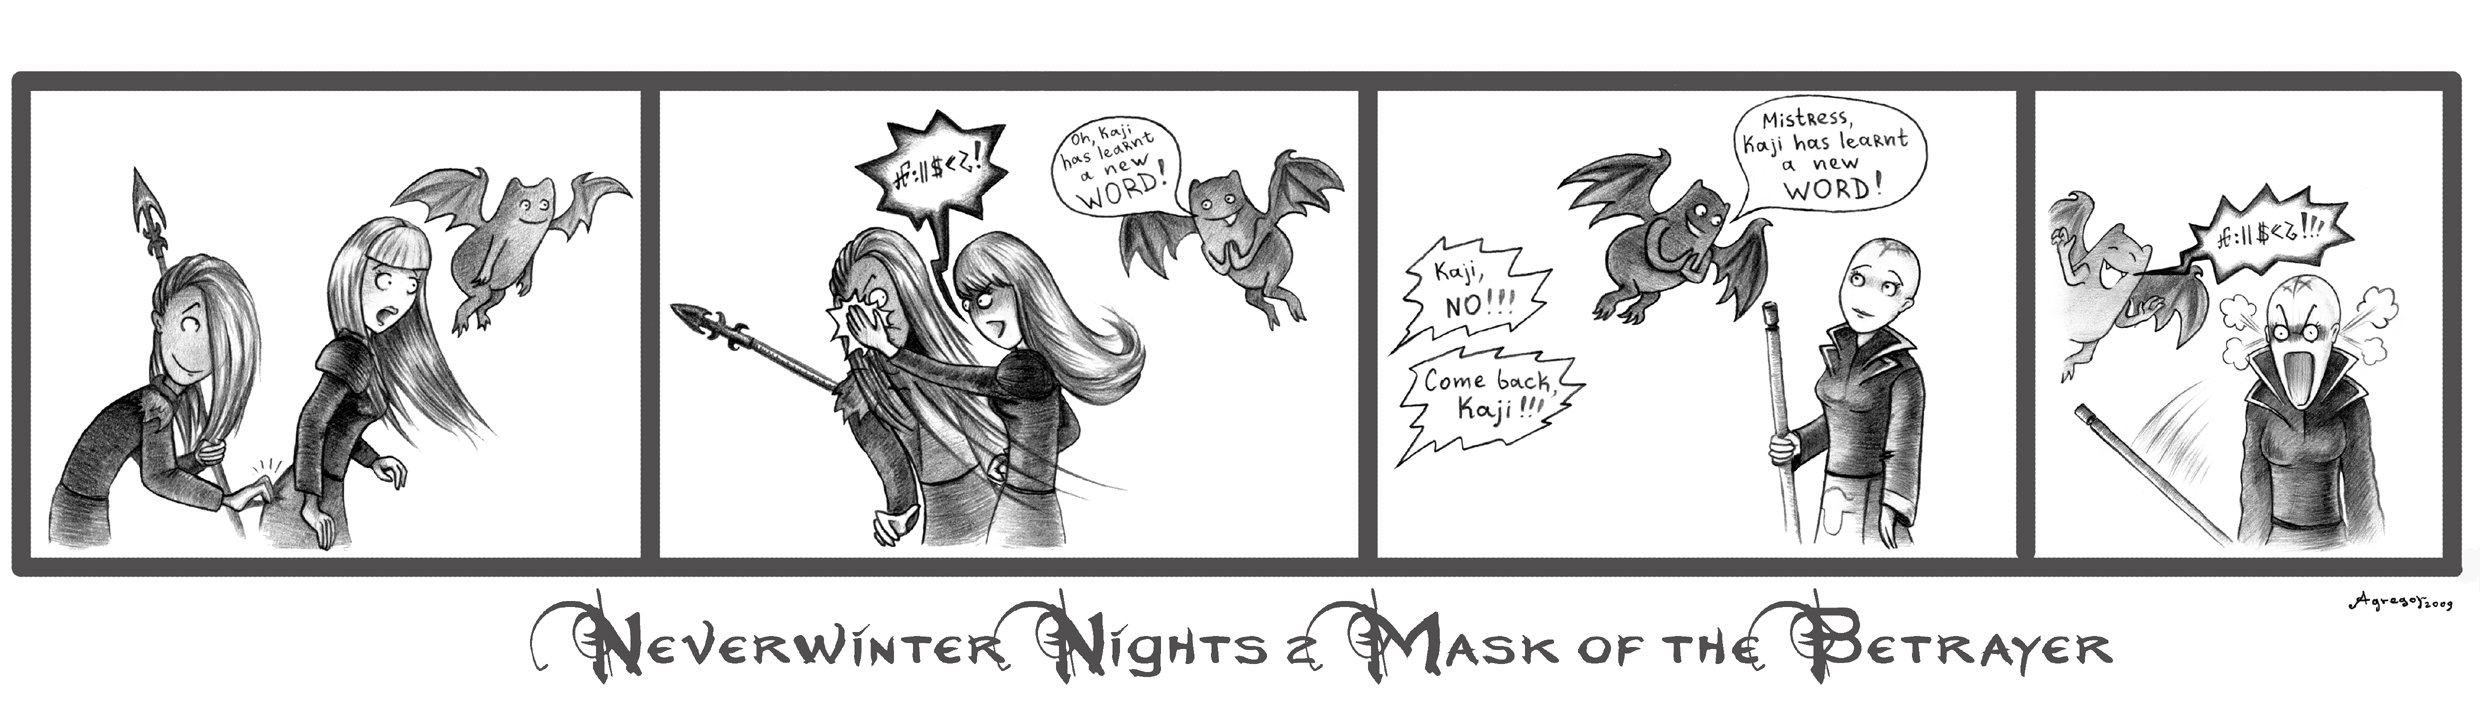 Neverwinter Nights clipart #4, Download drawings